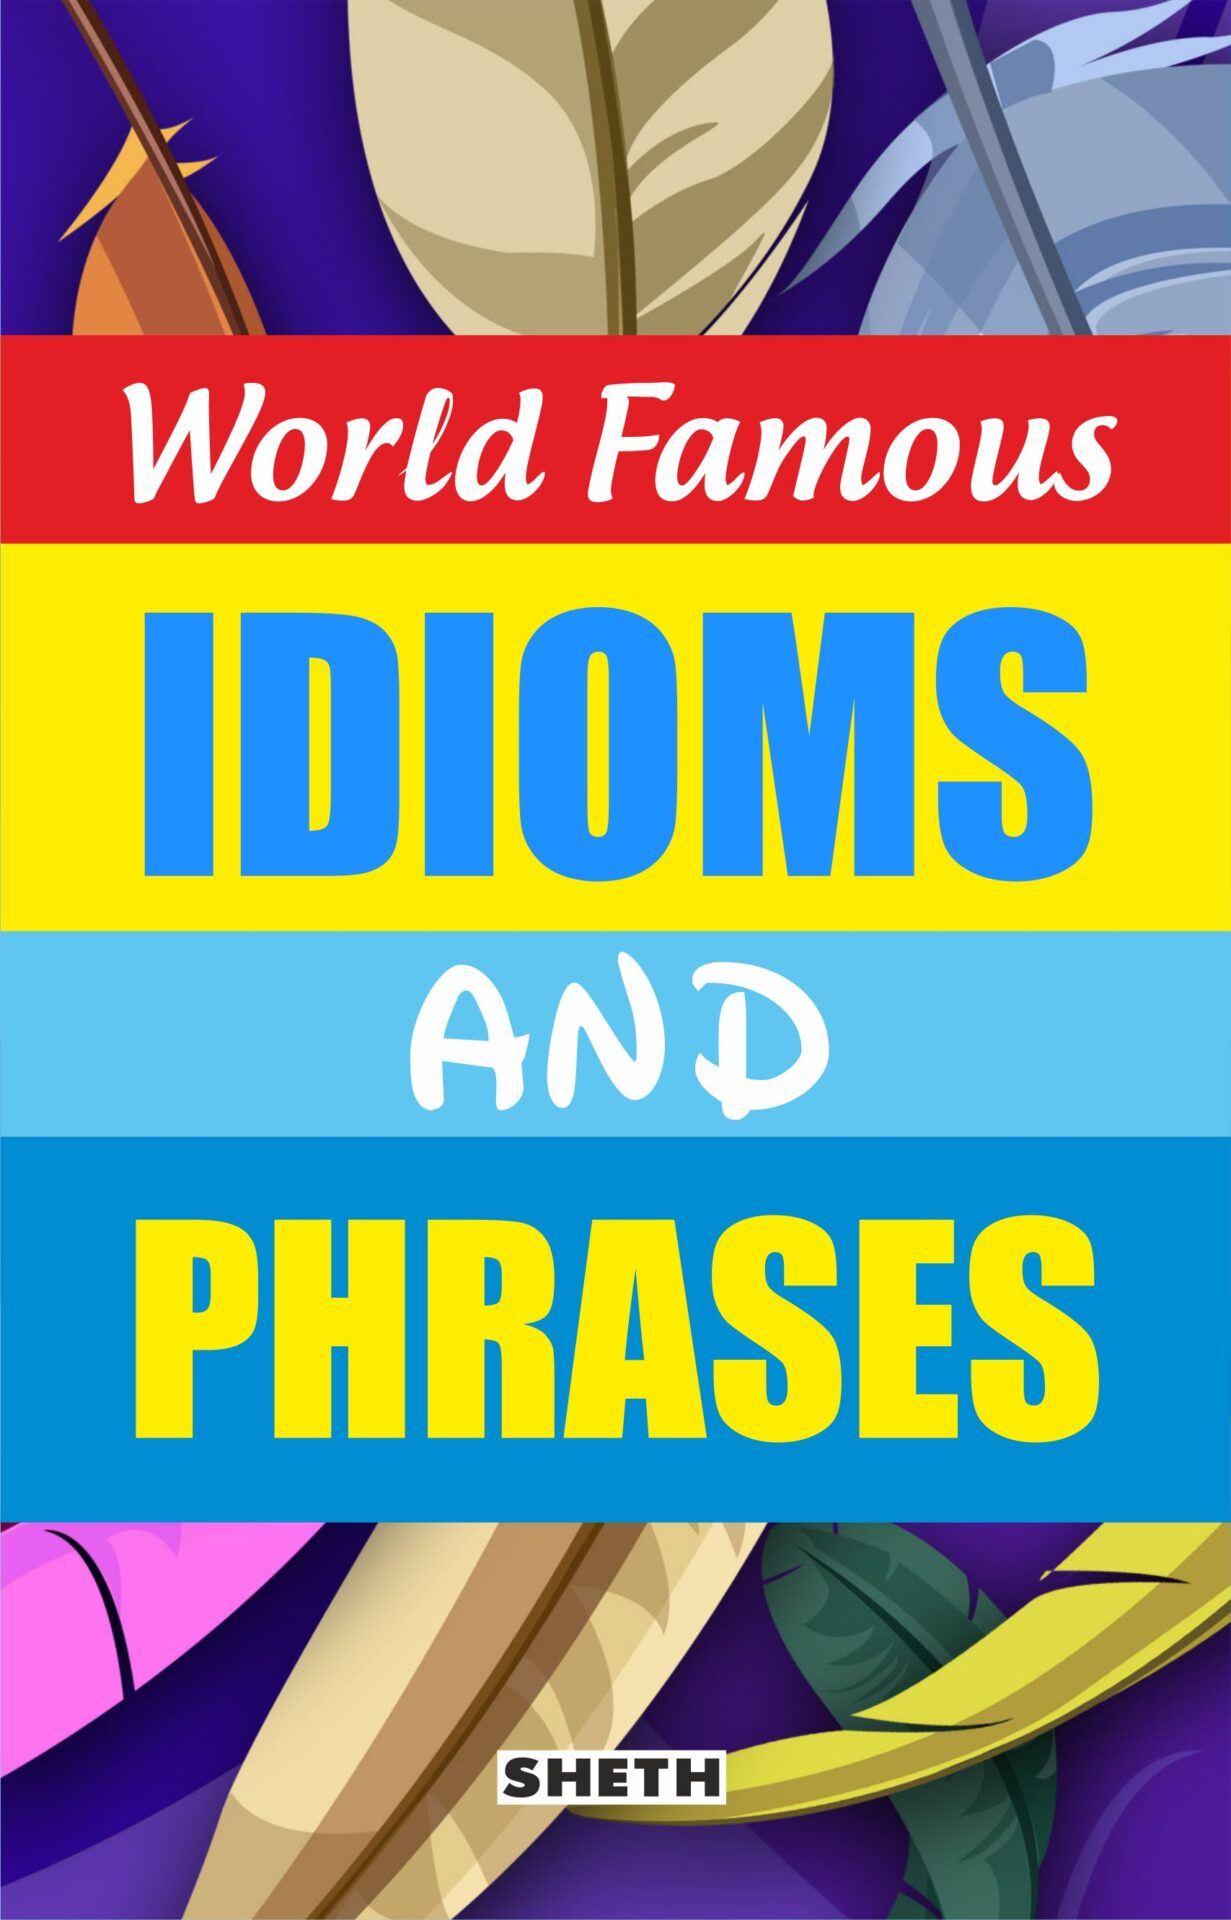 Sheth Books World Famous Idioms and Phrases 1